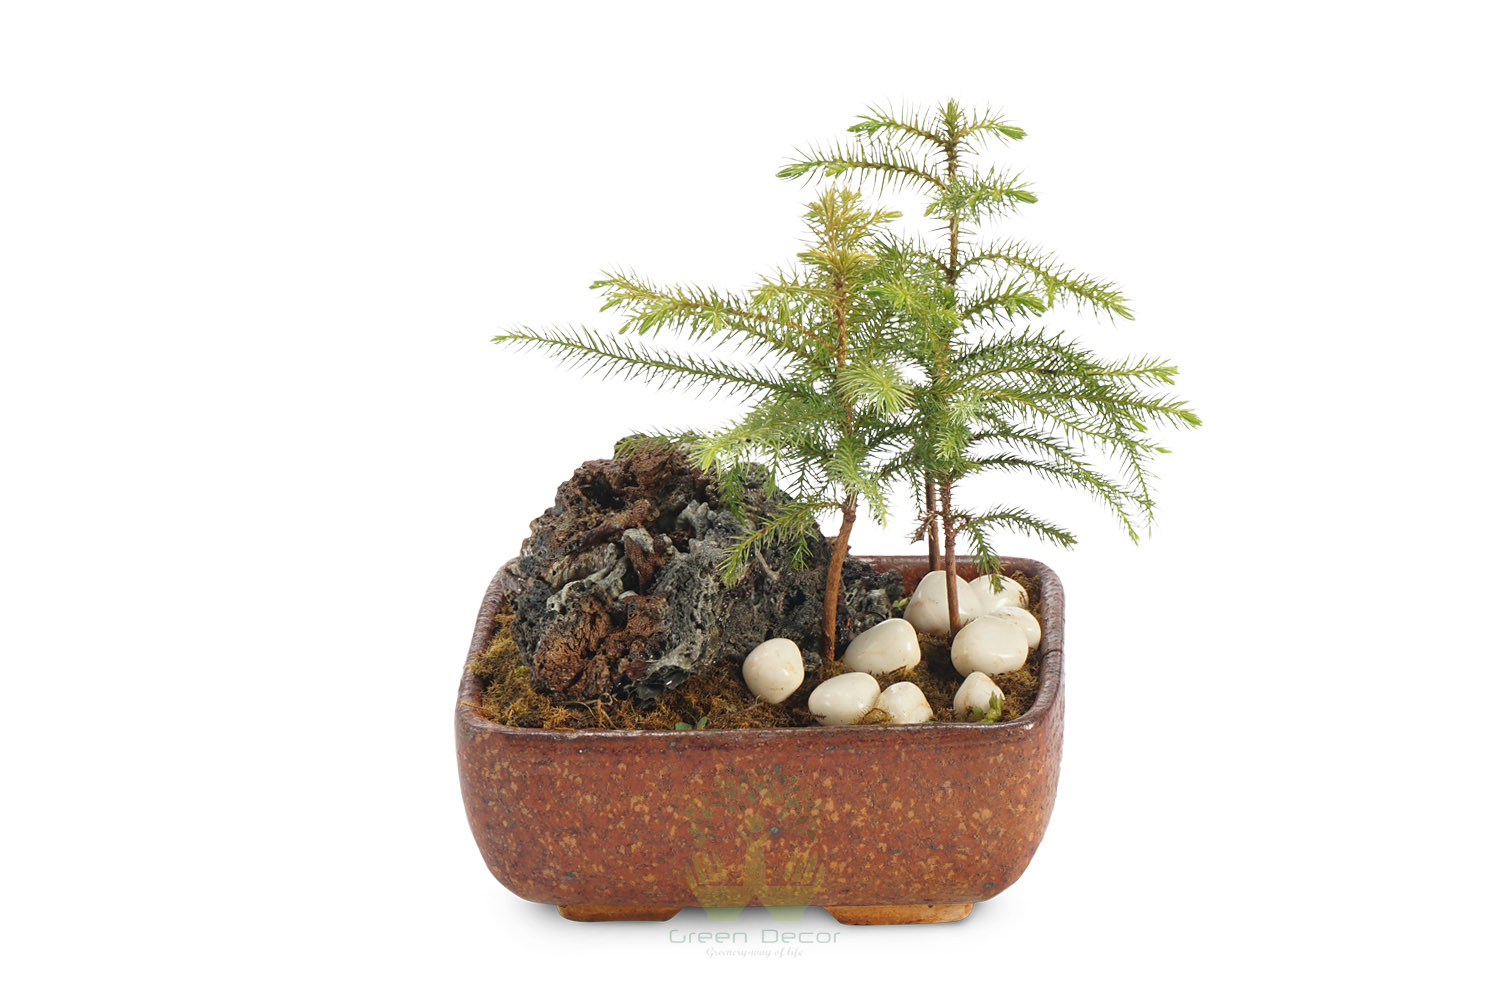 Buy Aracuria Plants , White Pots and seeds in Delhi NCR by the best online nursery shop Greendecor.